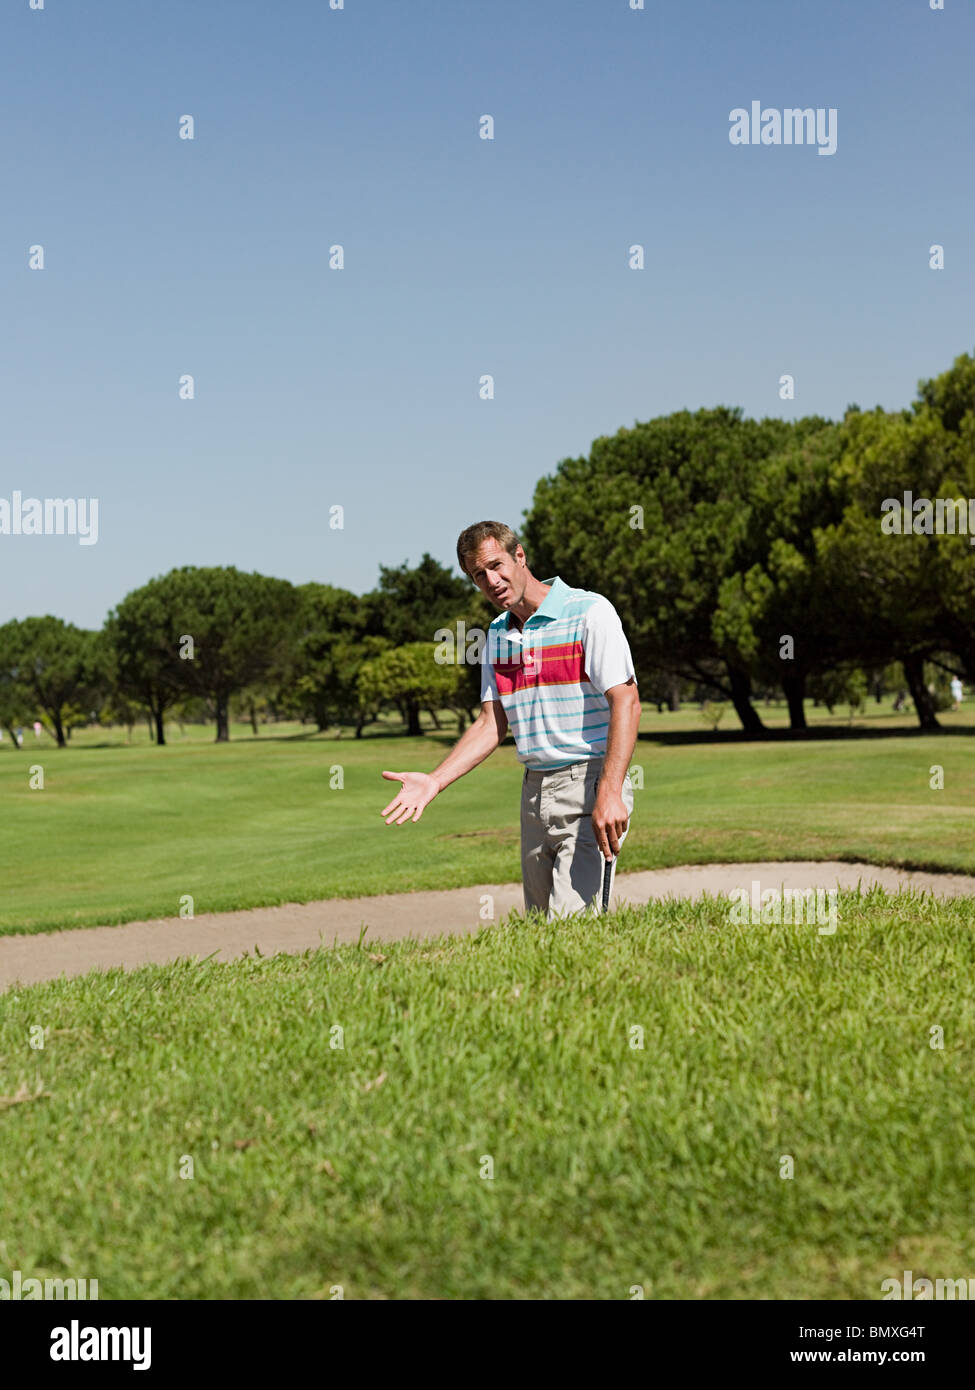 Man playing golf, stuck in bunker - Stock Image